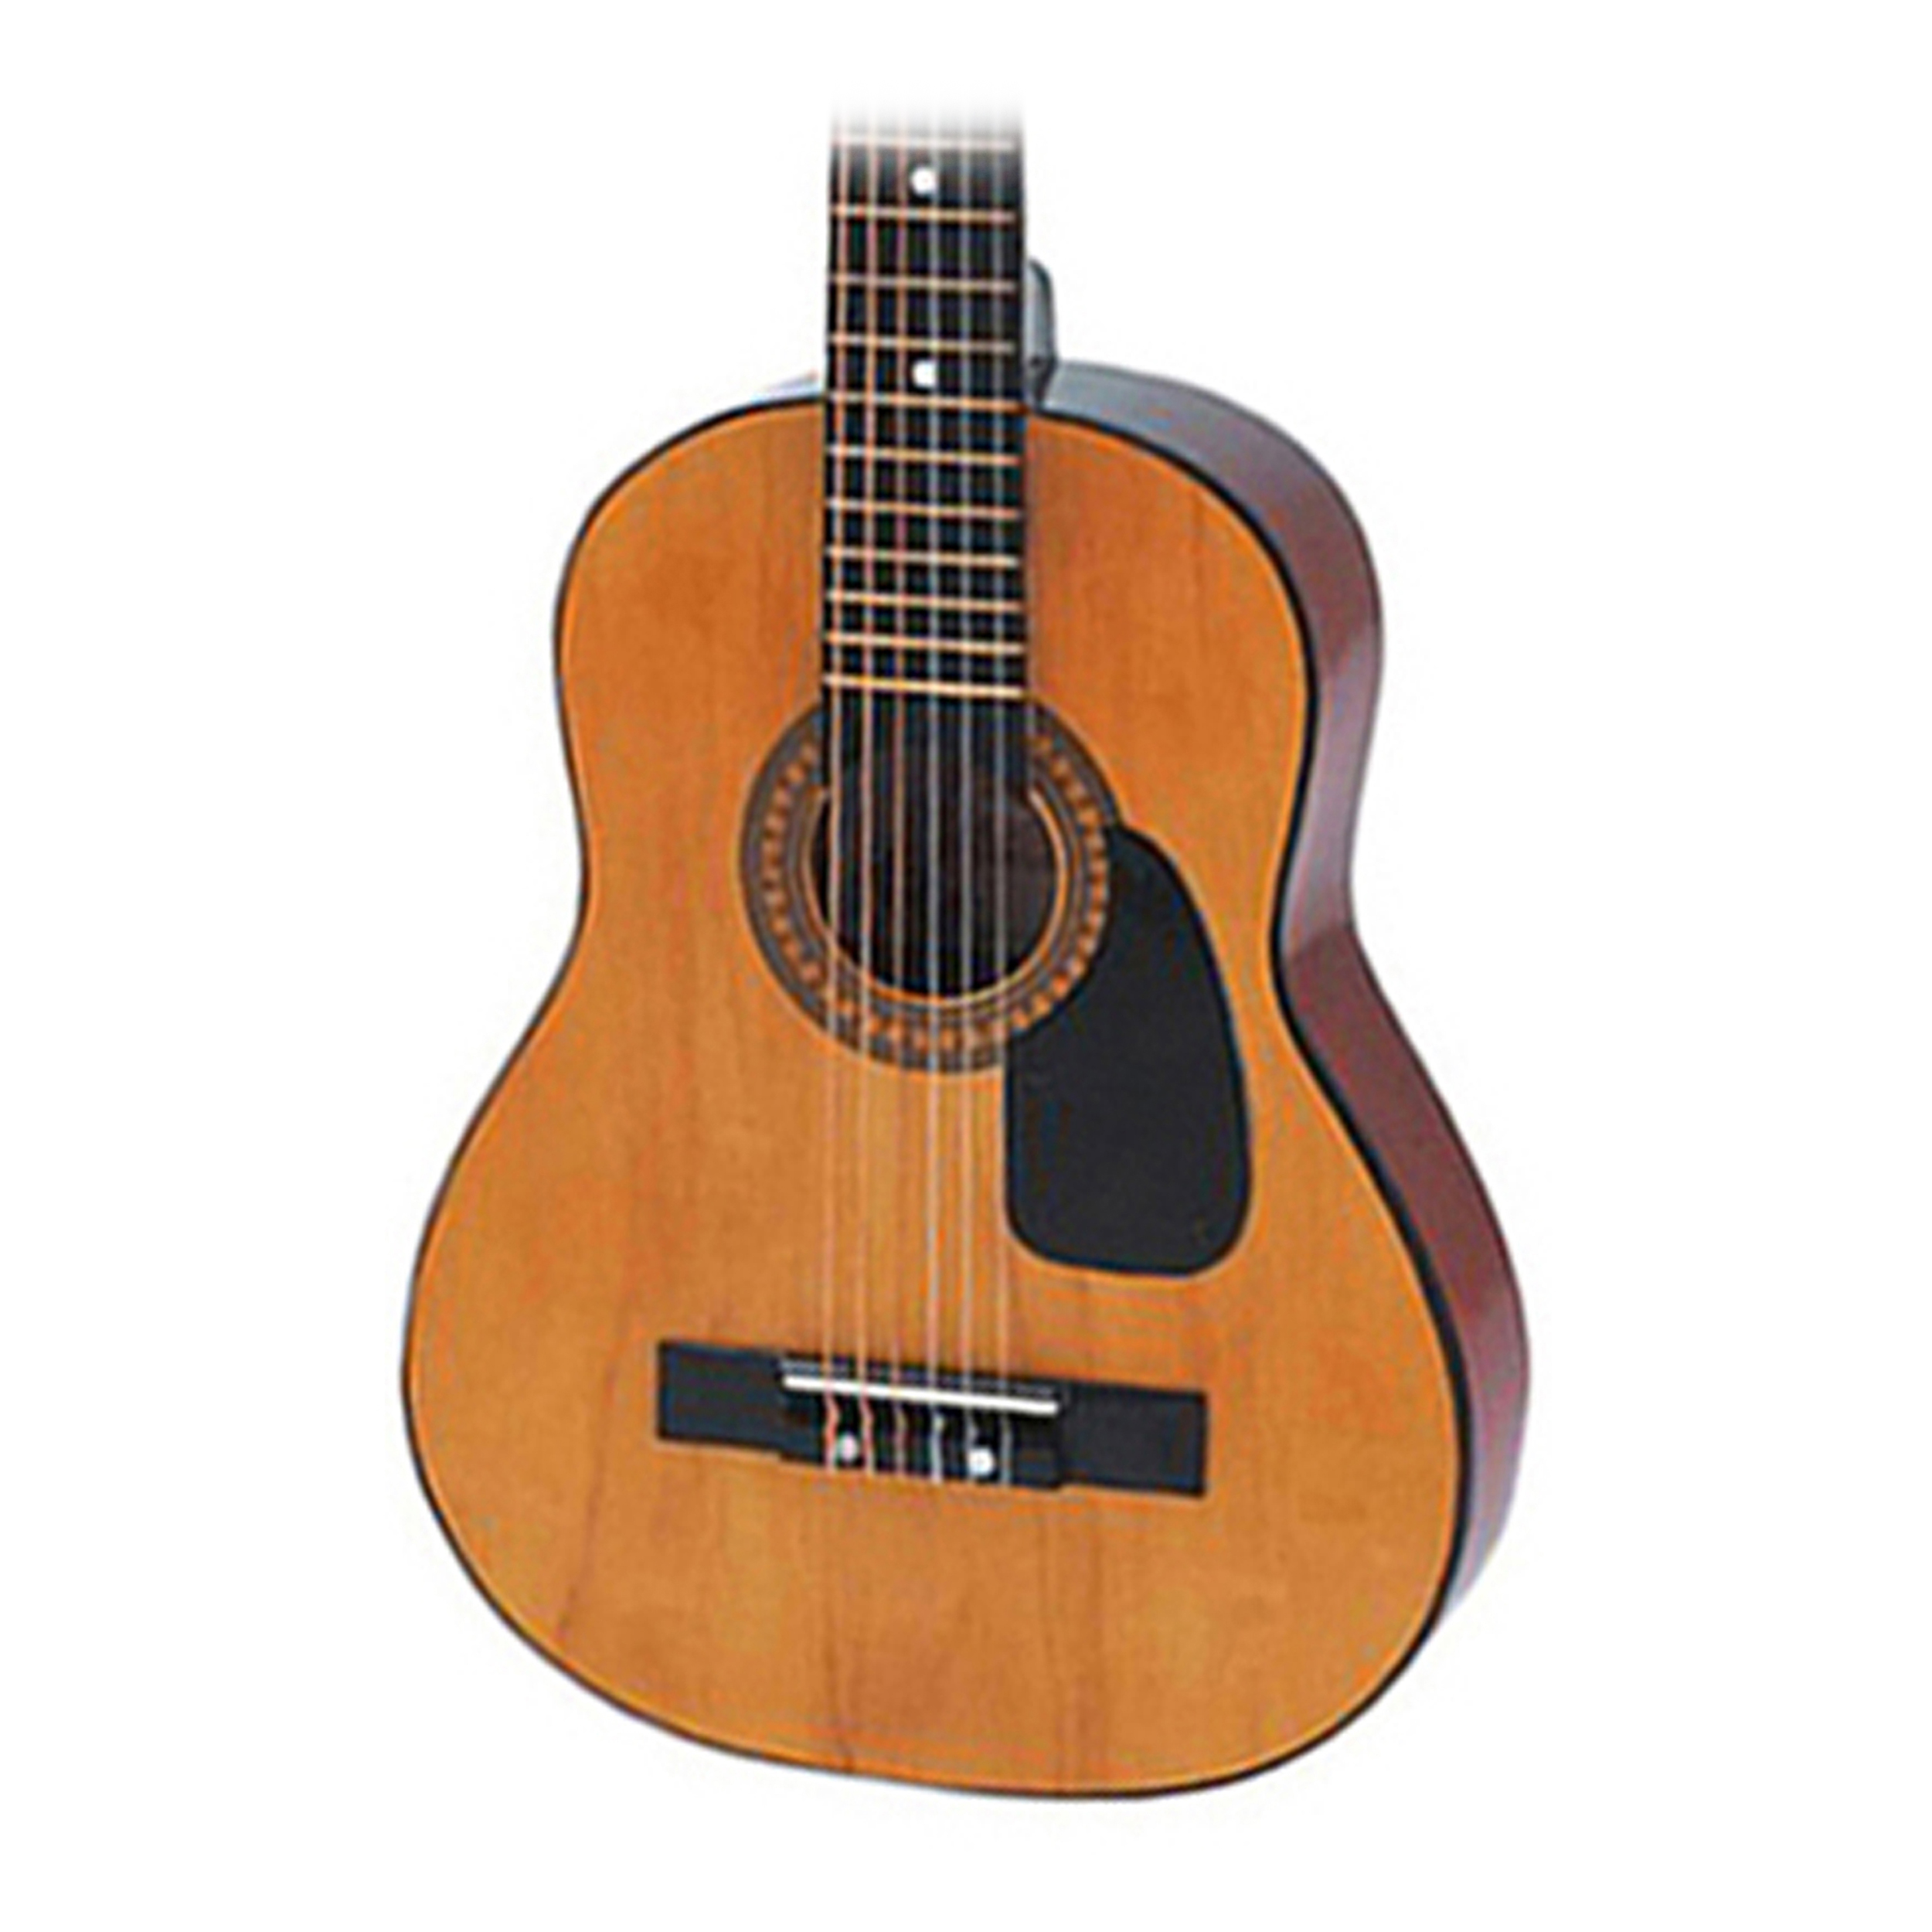 hohner hag250p 1 2 size child s guitar. Black Bedroom Furniture Sets. Home Design Ideas